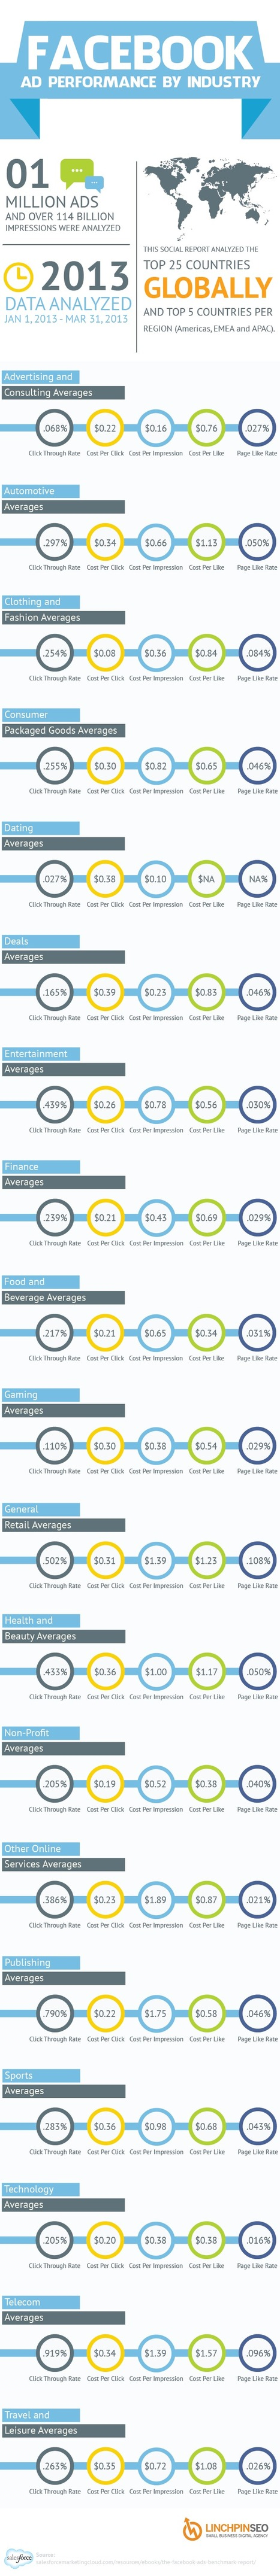 [Infographic] Facebook Ad Performance by Industry | Viral Classified News | Scoop.it